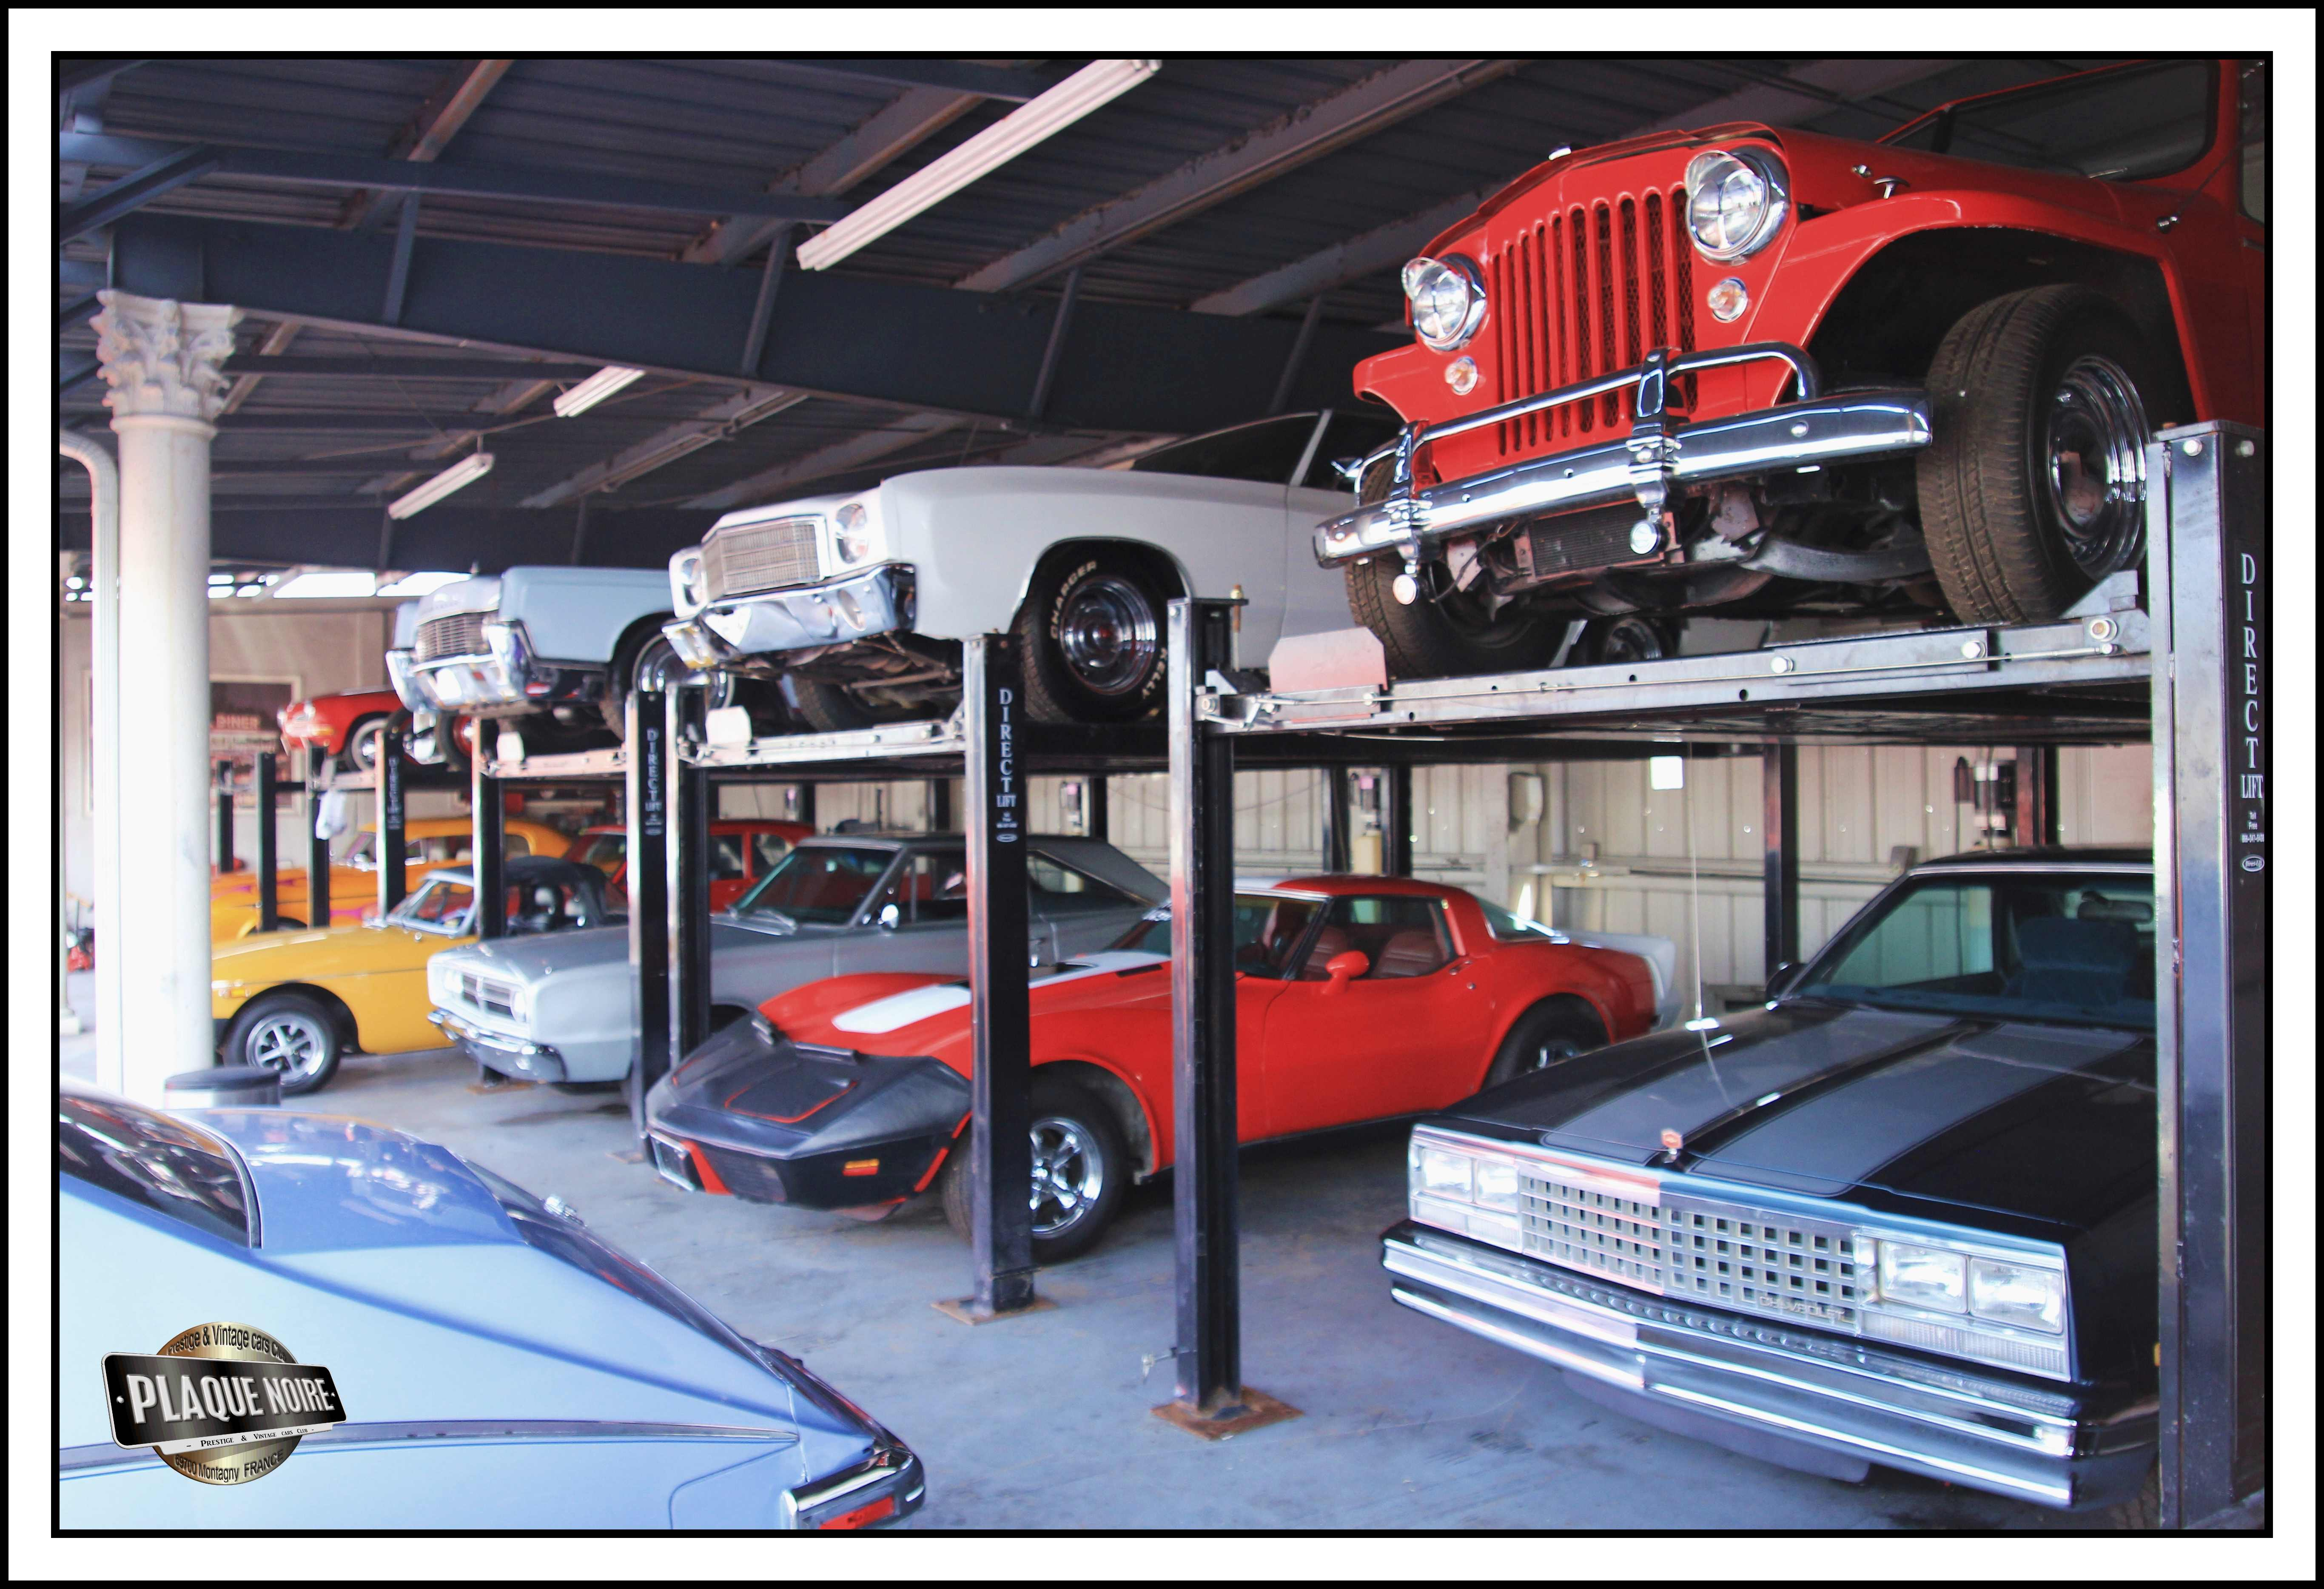 Garage ted vernon voitures am ricaines toubab9 for Cote reprise voiture garage